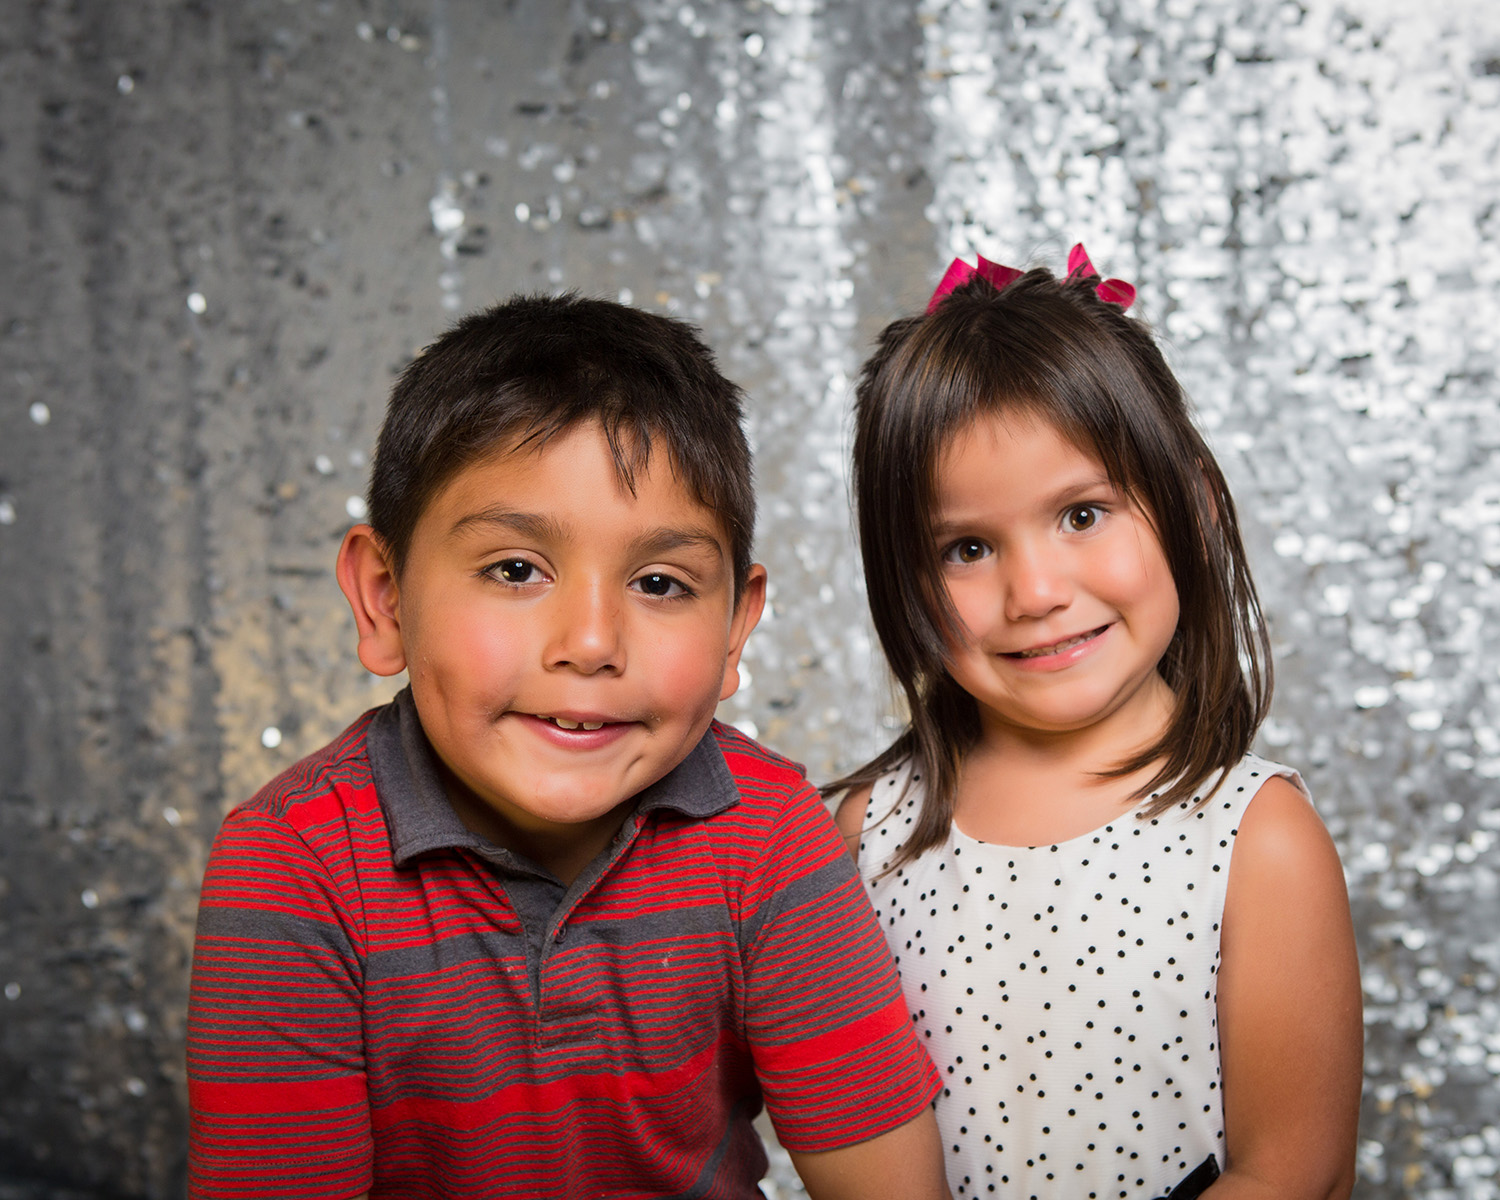 Adoption in lubbock texas Heart Gallery March 2019